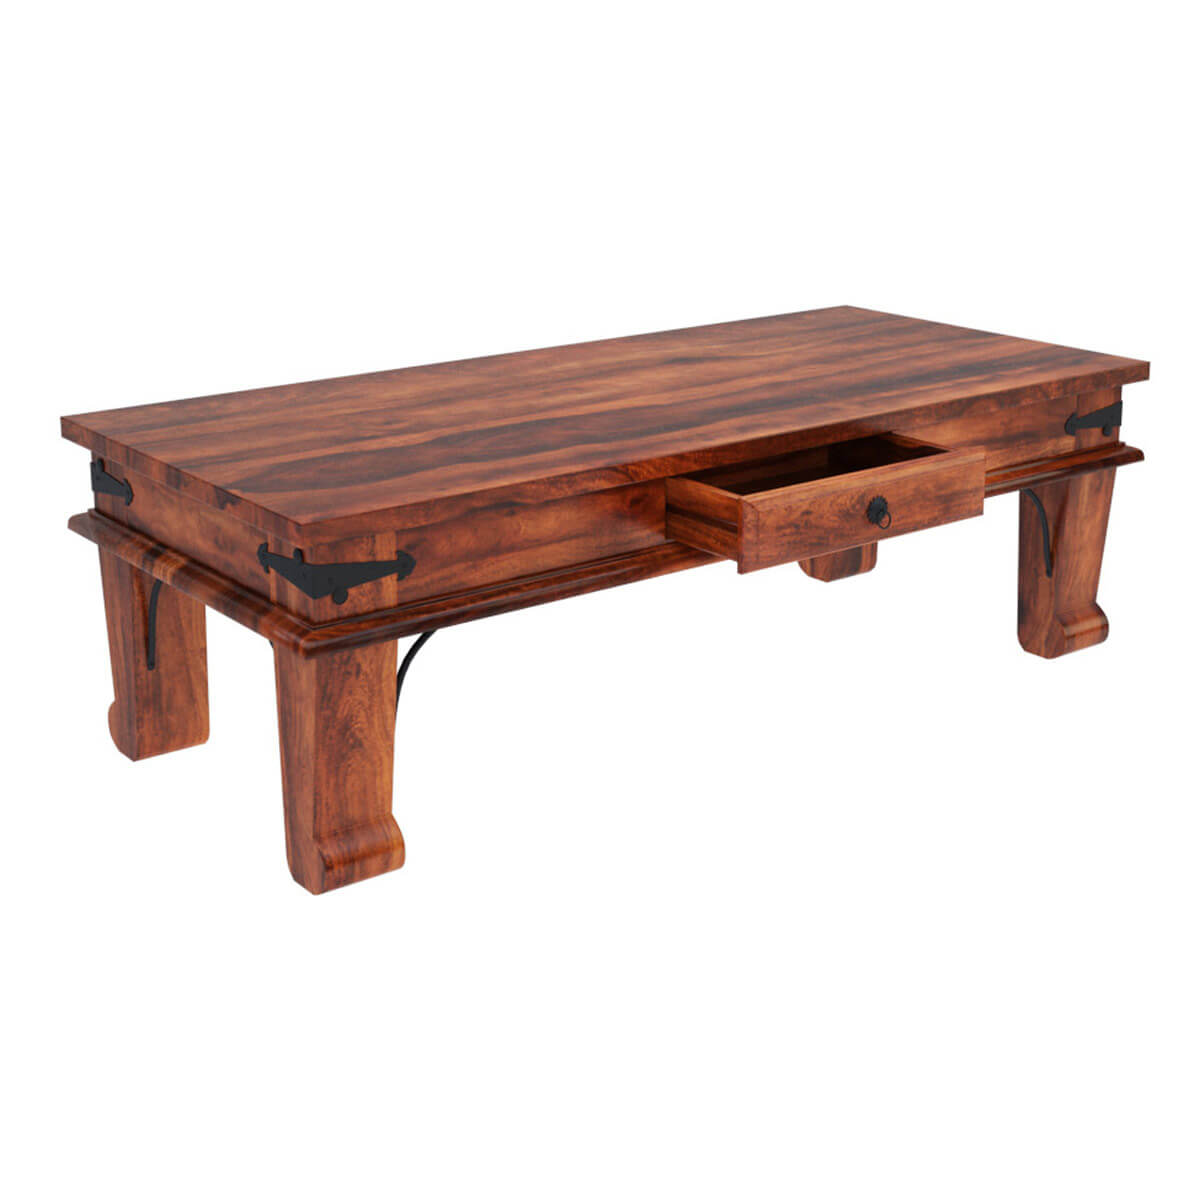 Solid Wood Coffee Tables ~ Rustic solid wood rectangular one drawer urban shaker